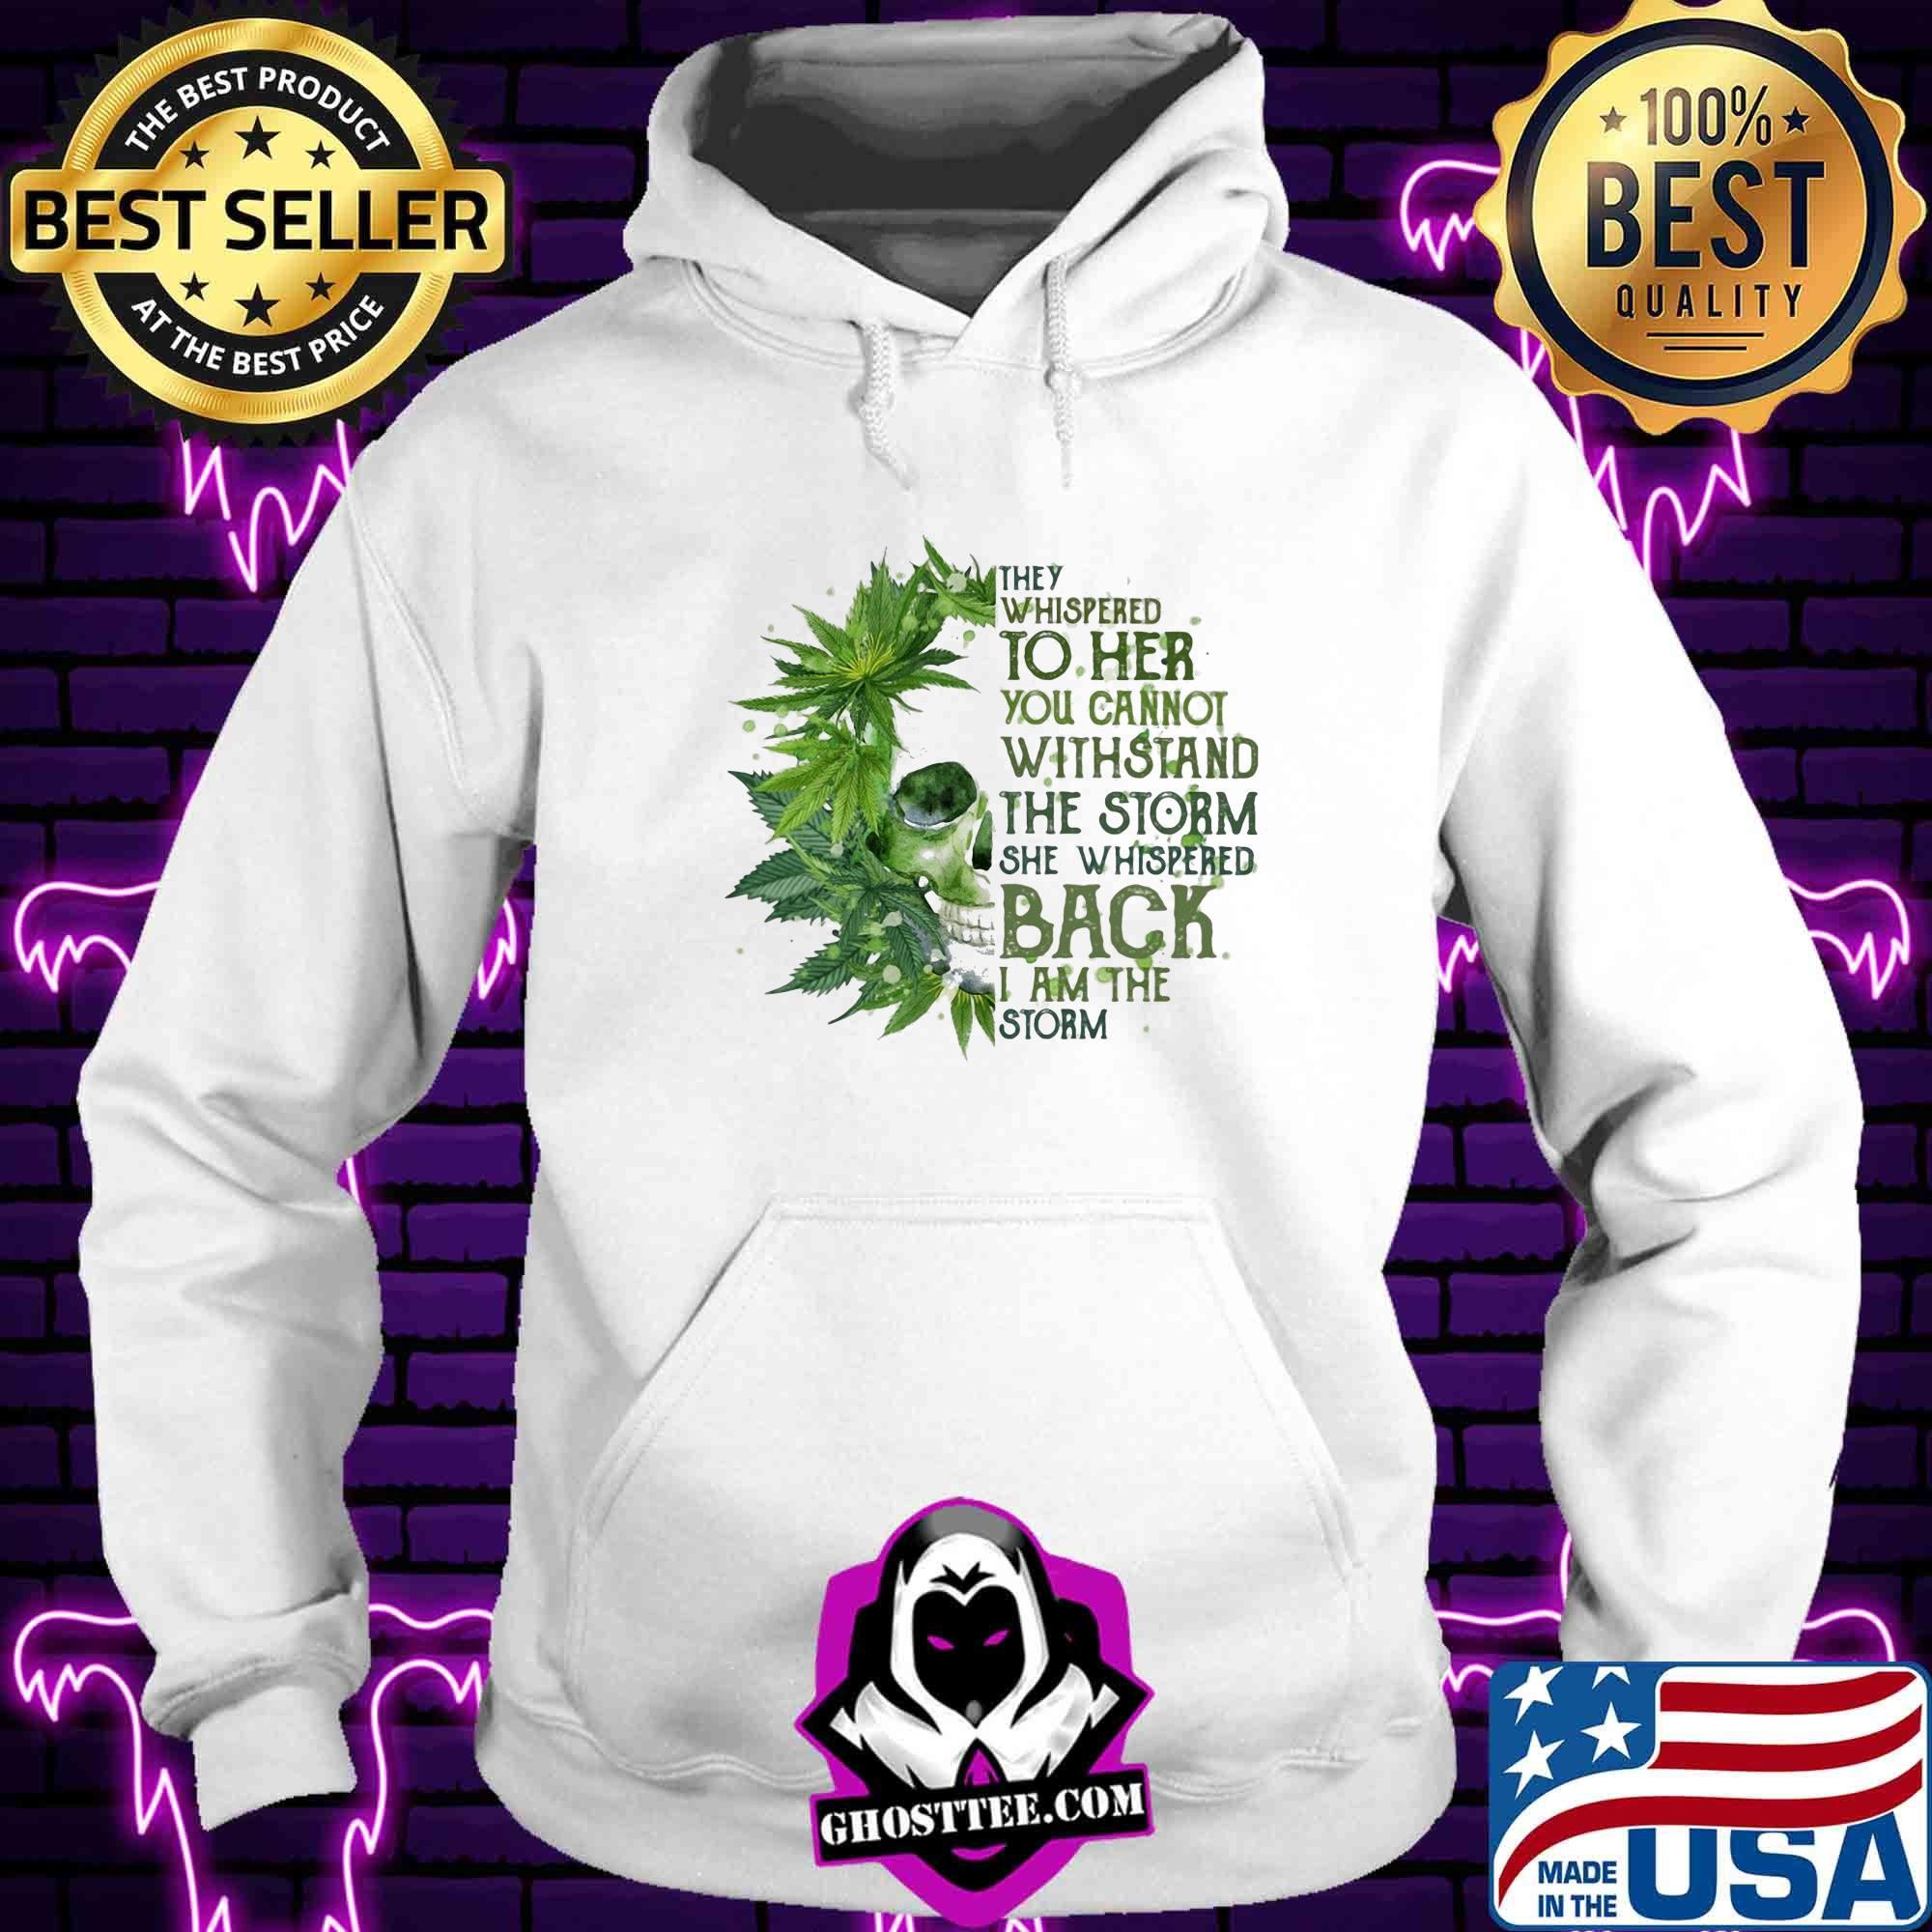 313ef4f4 they whispered to her you cannot withstand the storm she whispered back weed shirt hoodie - Home